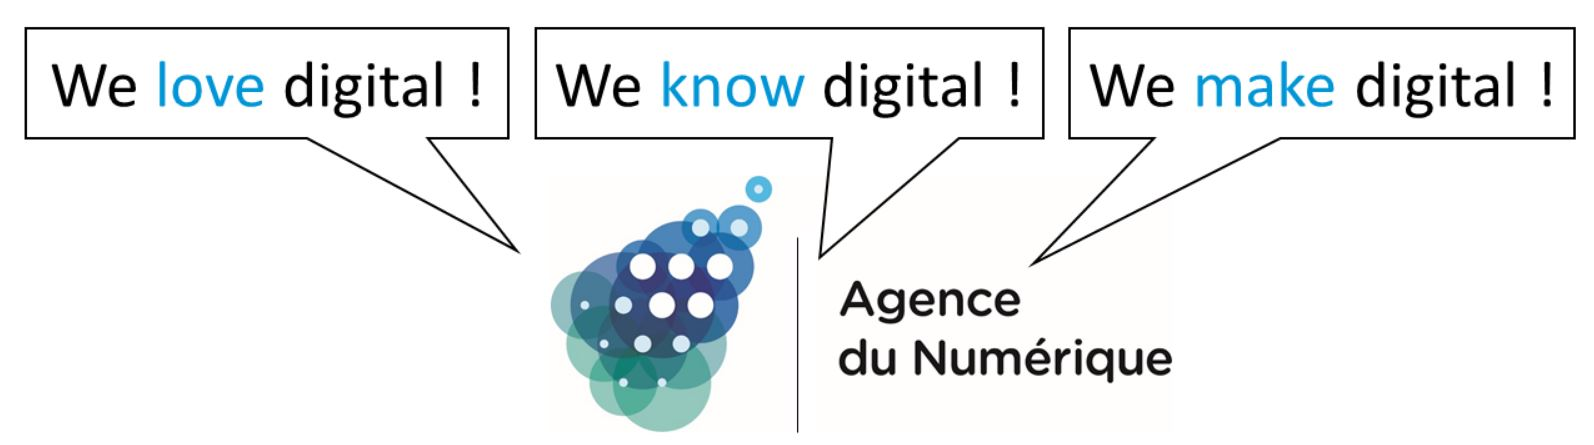 Agence du Numérique (AdN). We love digital. We know digital. We make digital